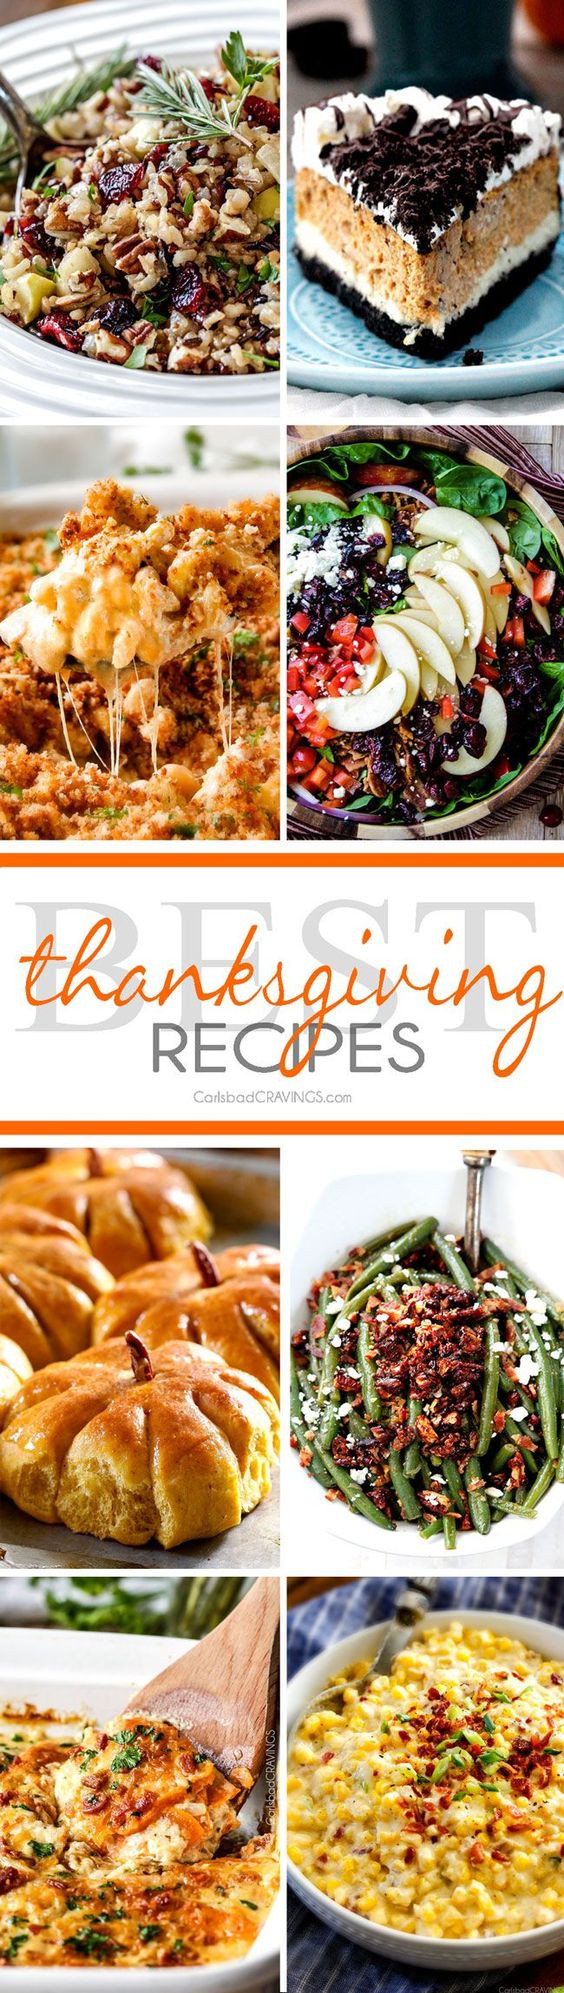 Appetizers For Thanksgiving Dinner  Over 25 of the BEST Thanksgiving Recipes all in ONE spot